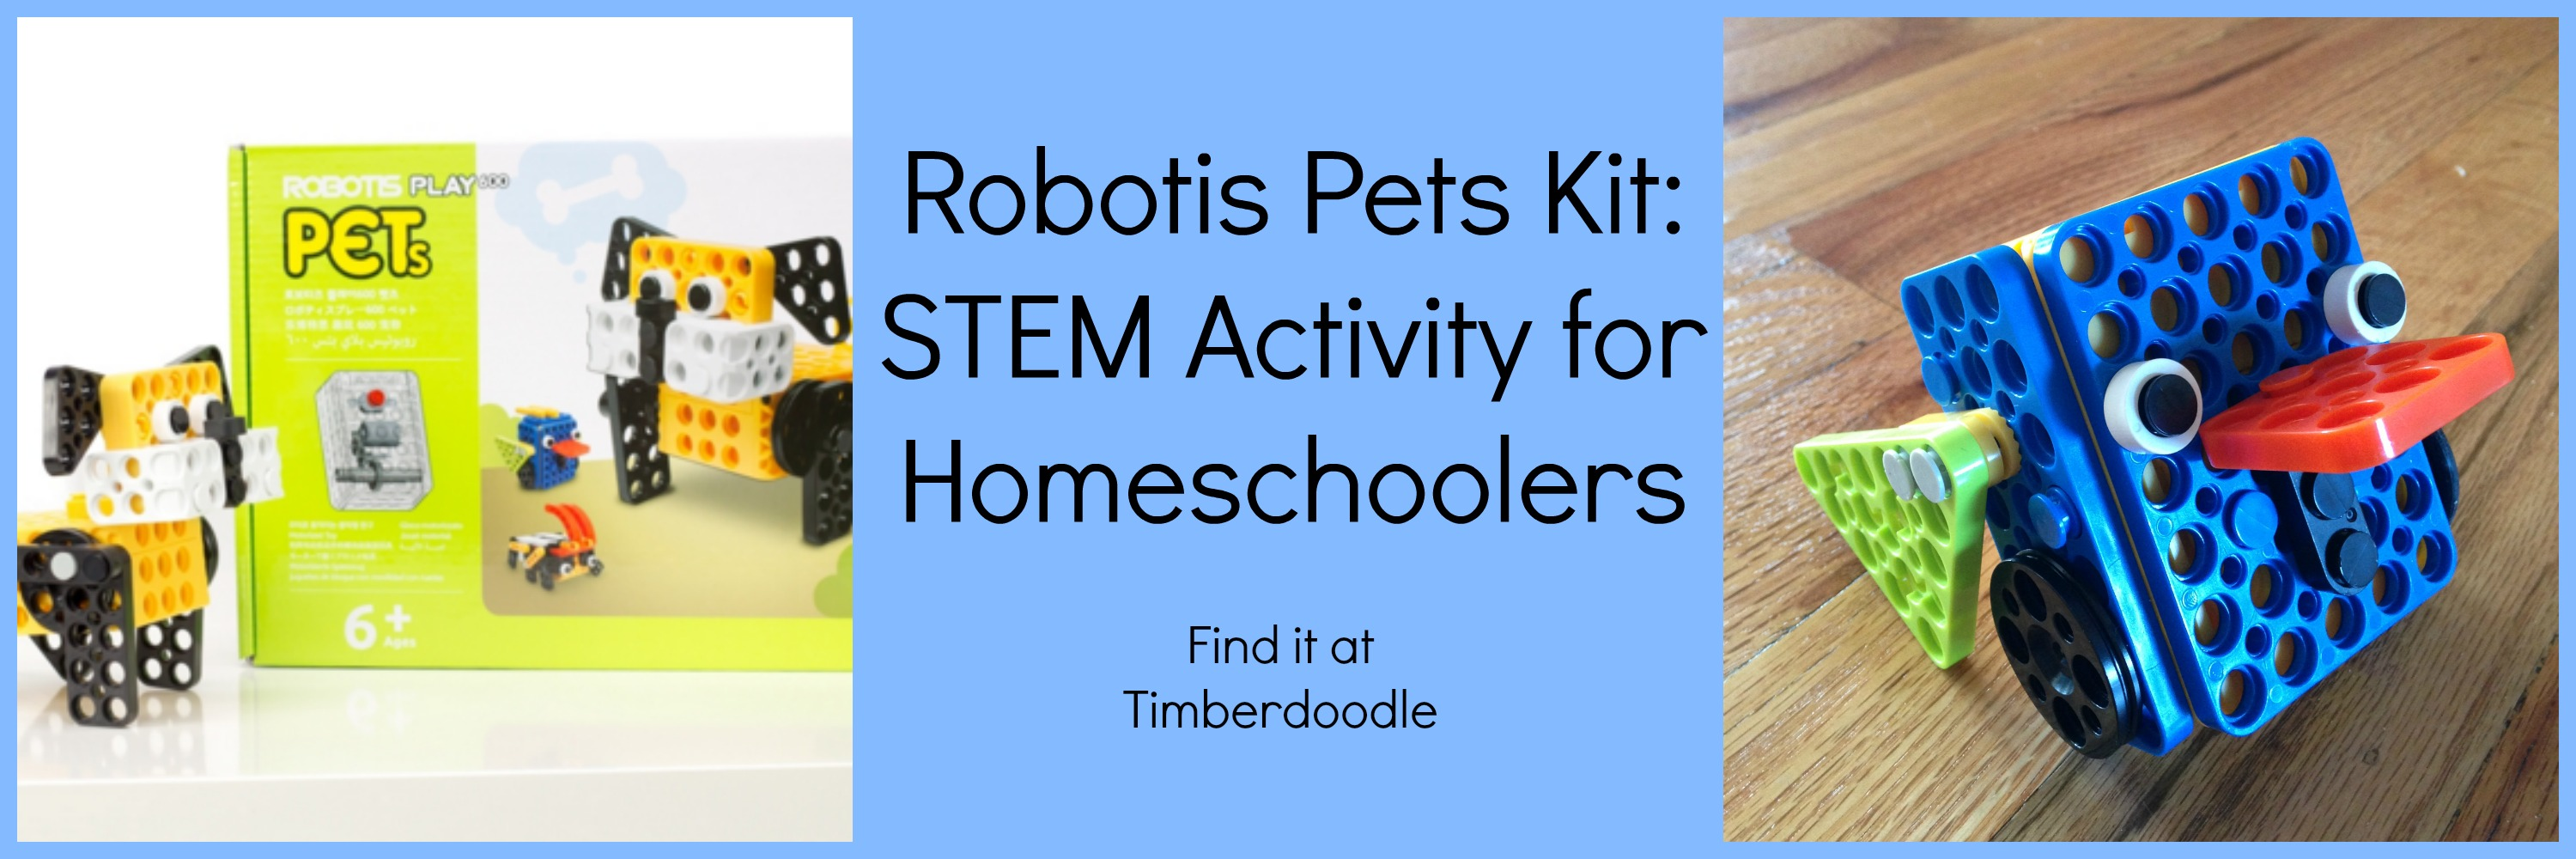 Robotis Pets Kit From Timberdoodle Introduction To